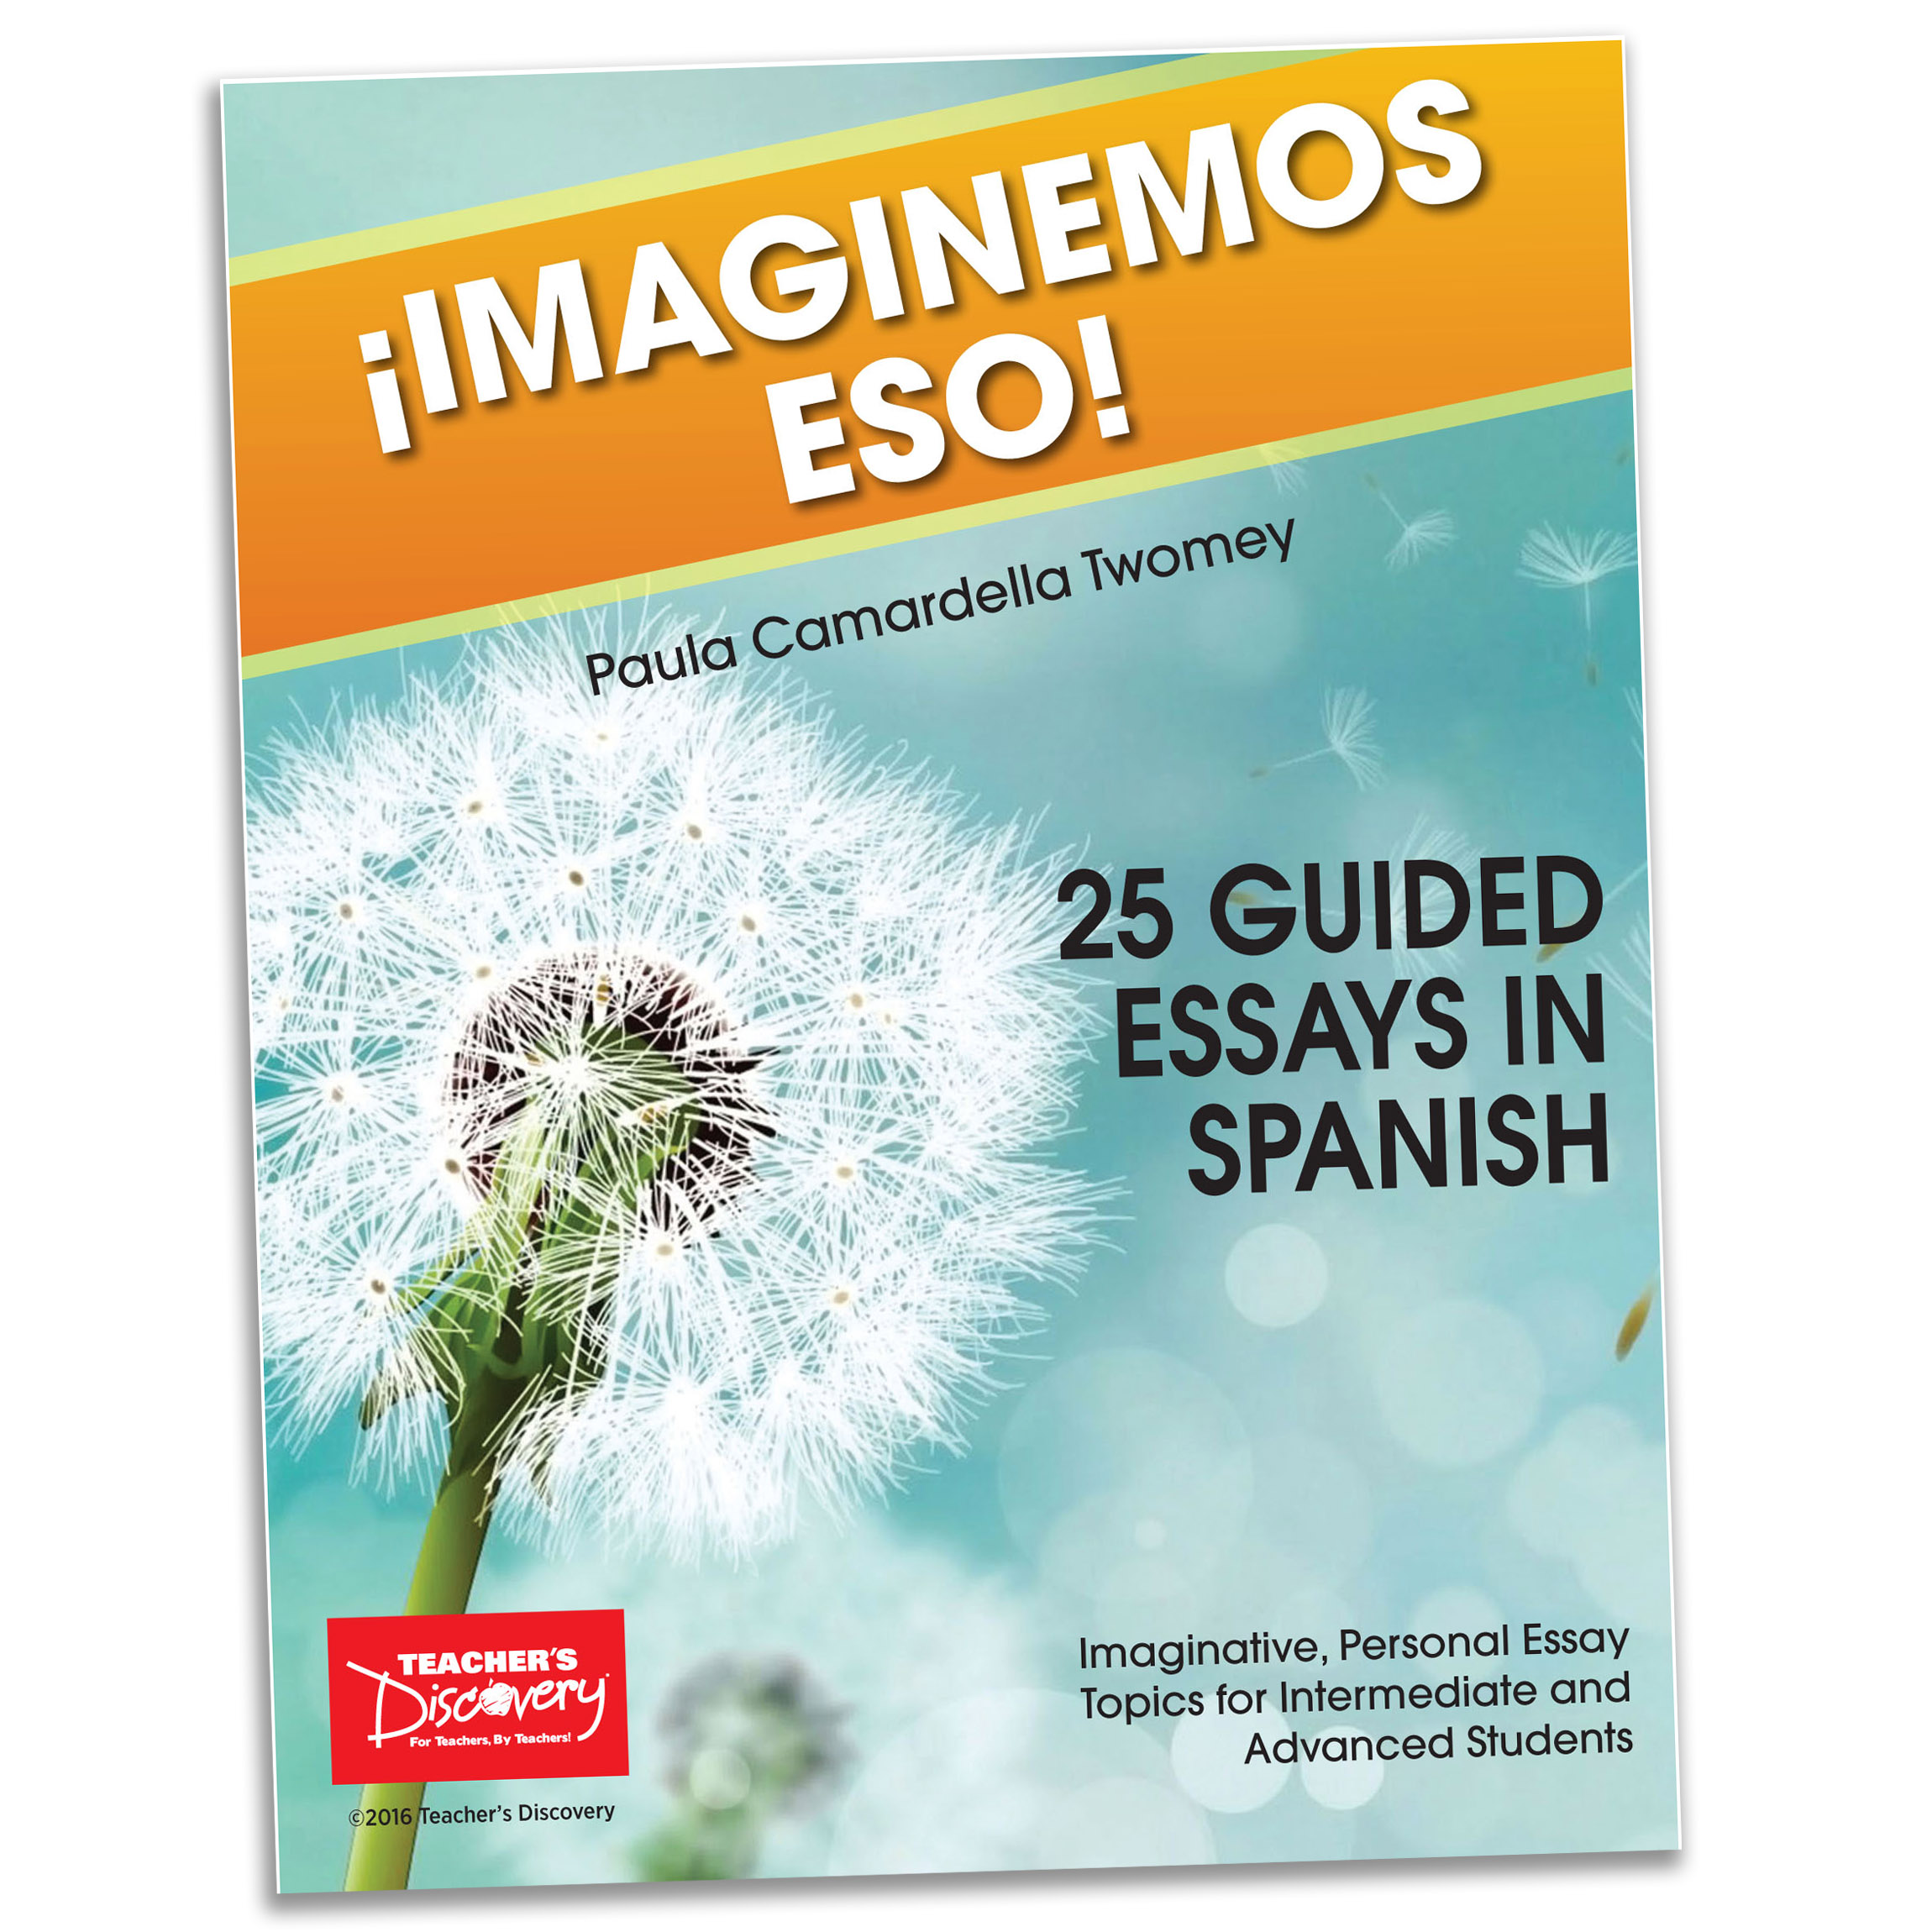 imaginemos eso 25 guided essays in spanish book books teacher s 25 guided essays in spanish book